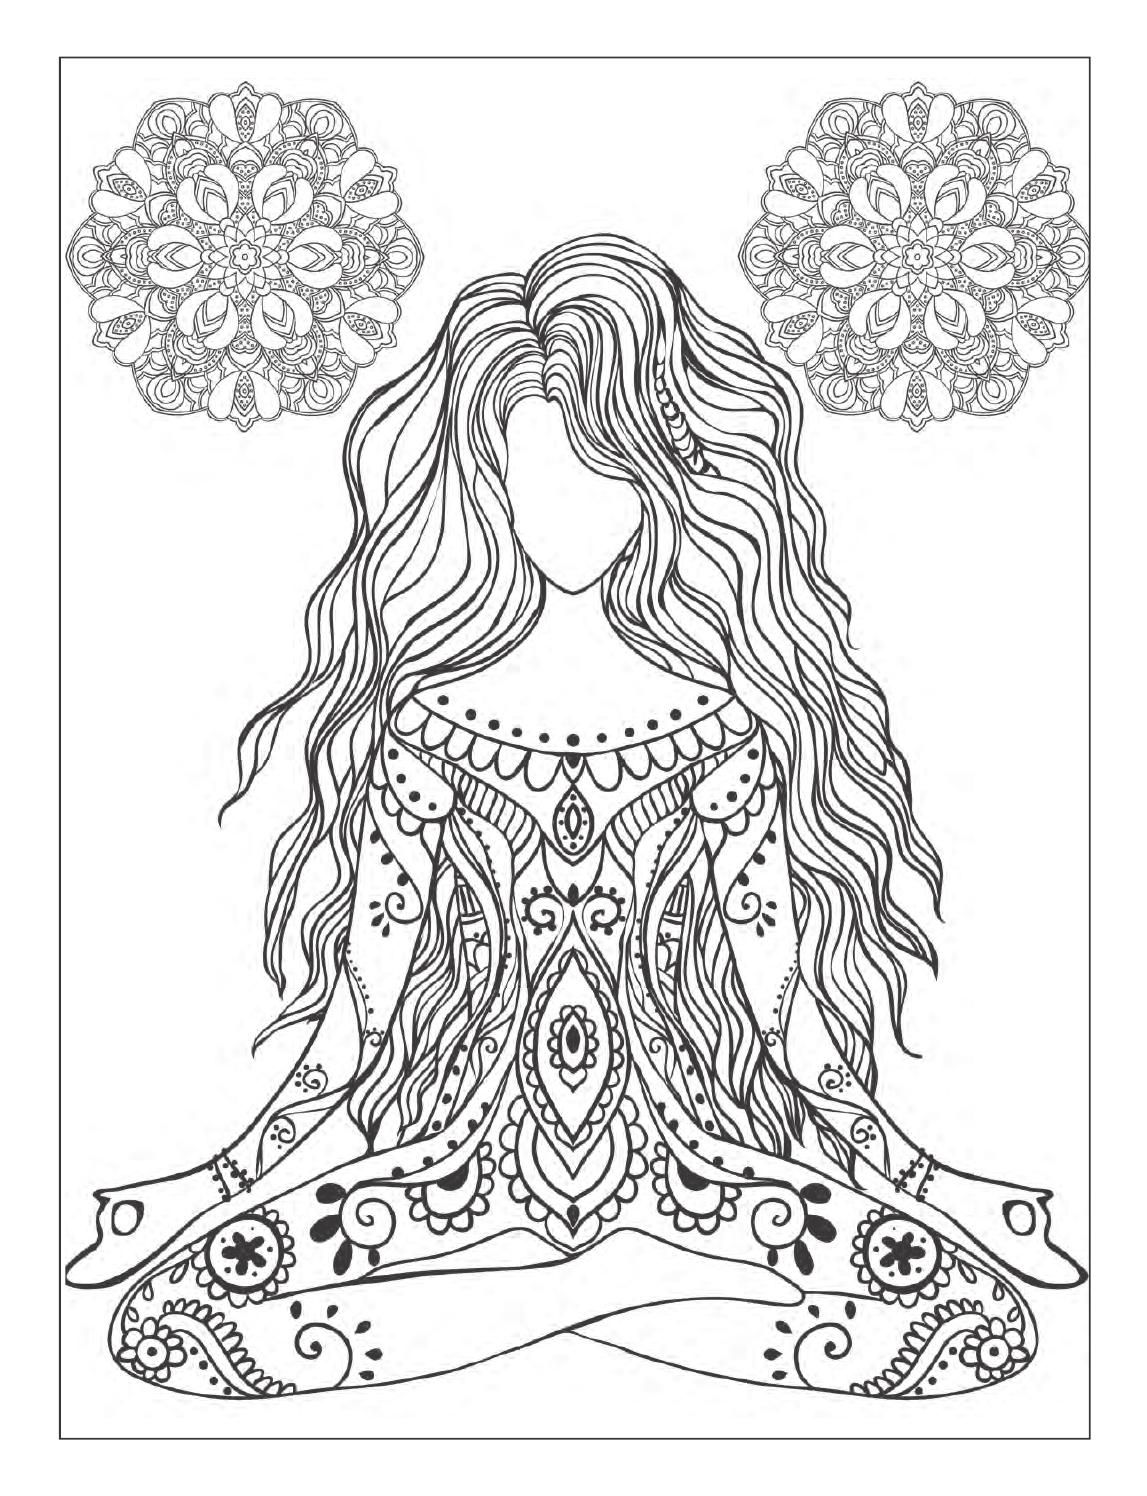 Zen coloring books for adults app - Yoga And Meditation Coloring Book For Adults With Yoga Poses And Mandalas